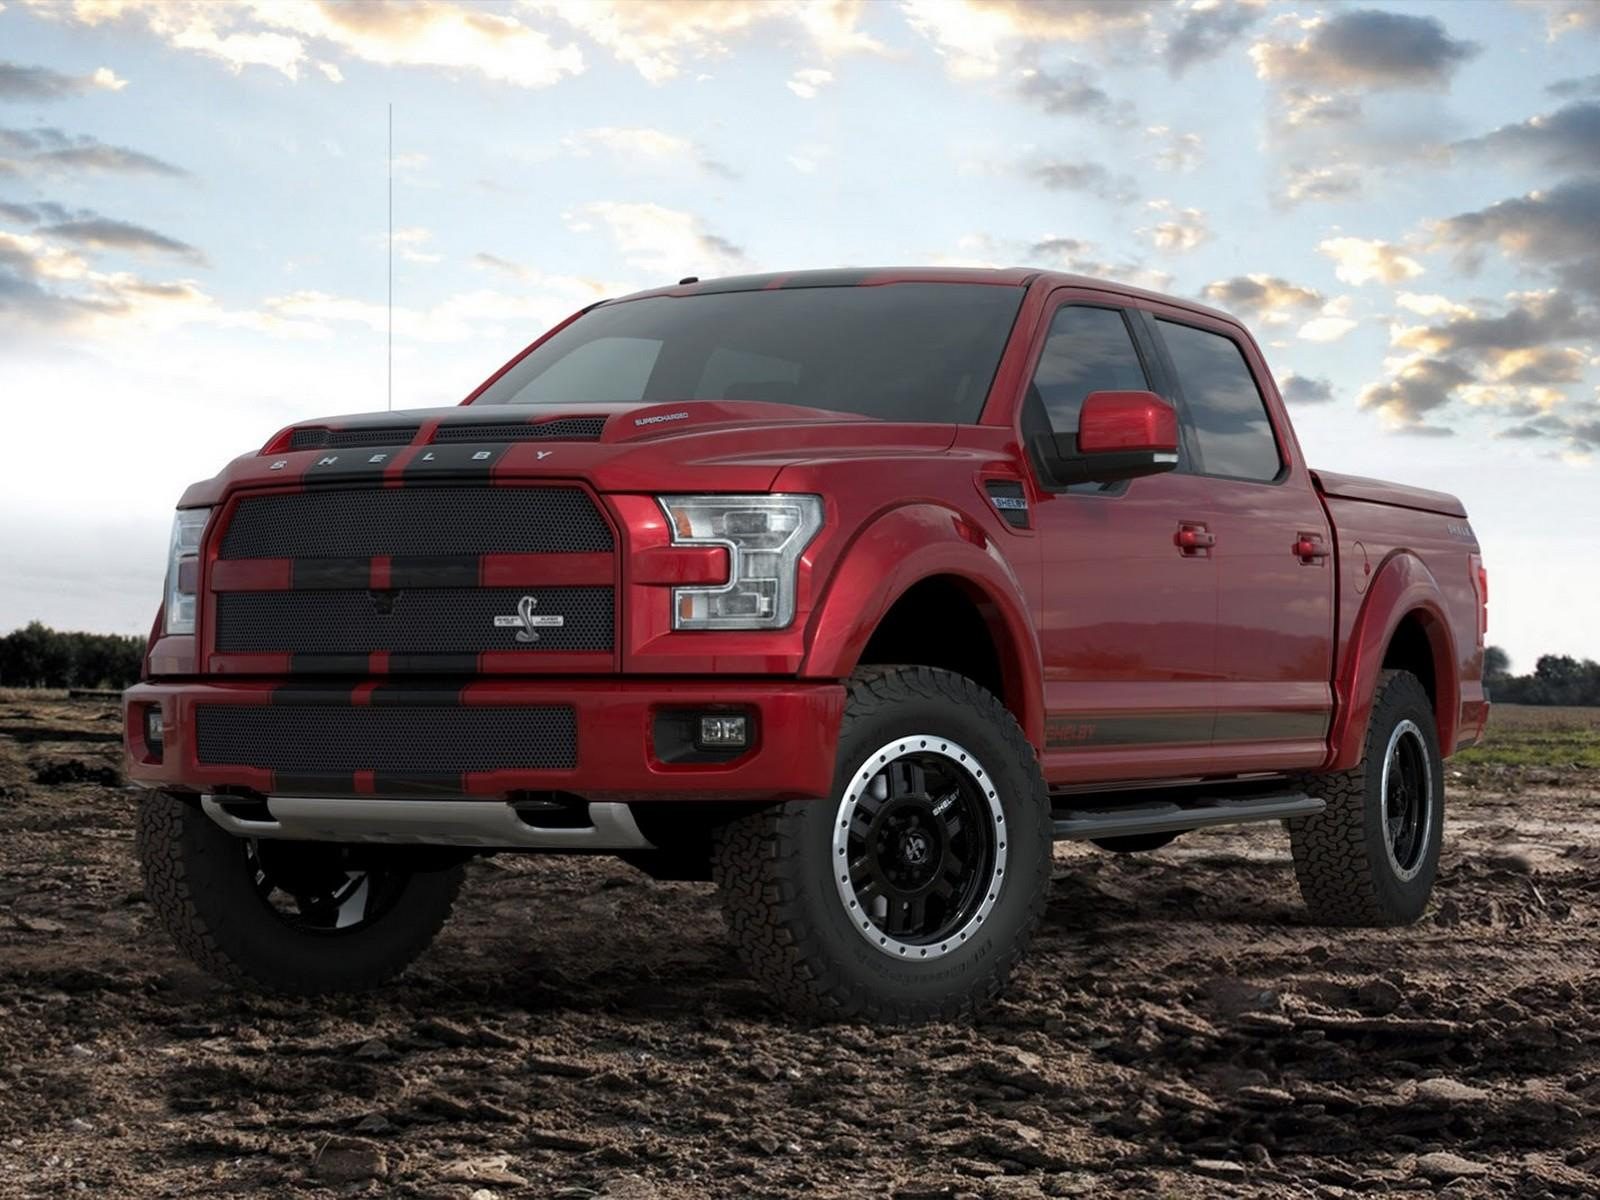 Shelby Truck 2018 >> Shelby F-150, una super pick up de 700 hp - Autocosmos.com